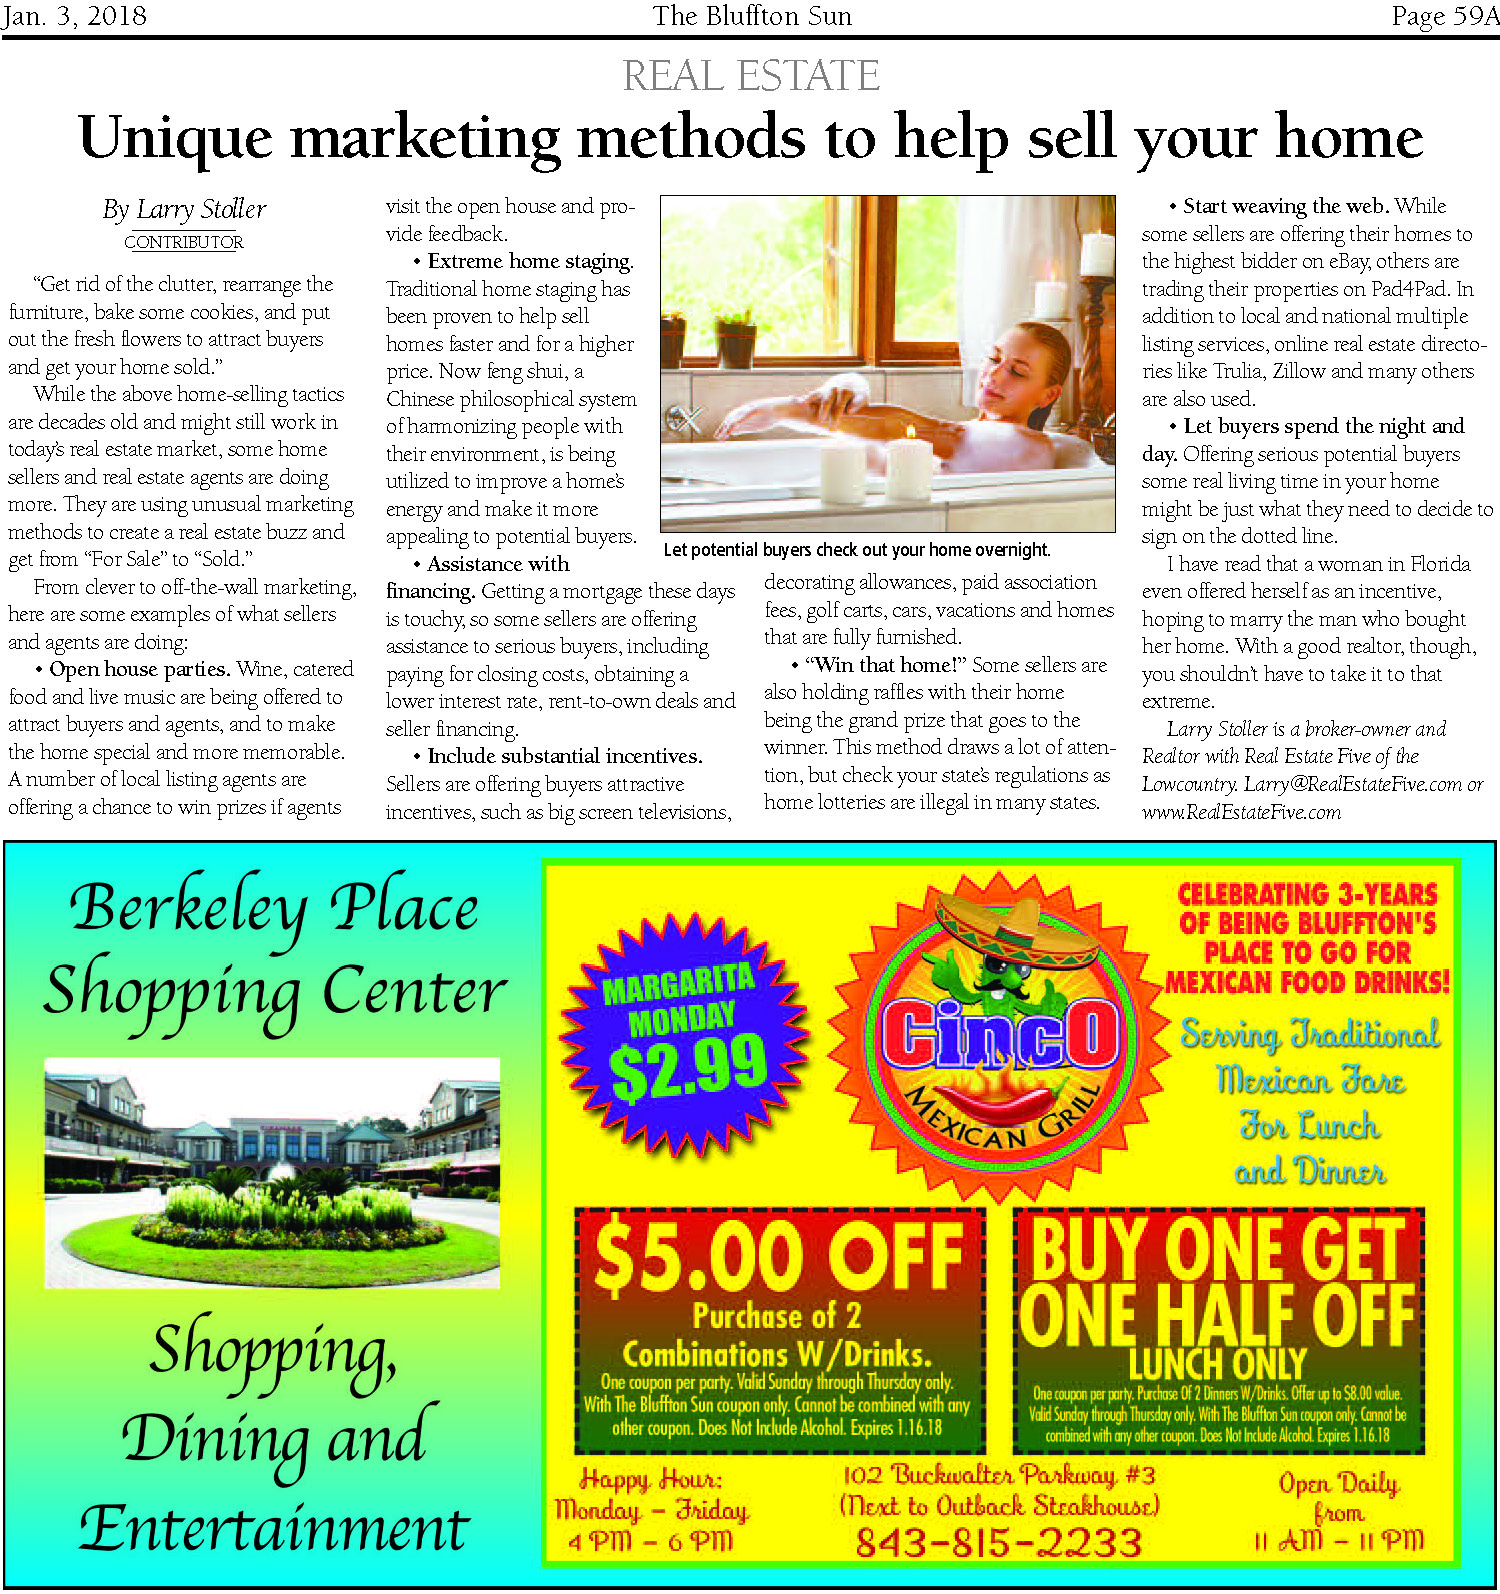 Bluffton Sun January 3 2018 The Voucher Outback Steakhouse 200000